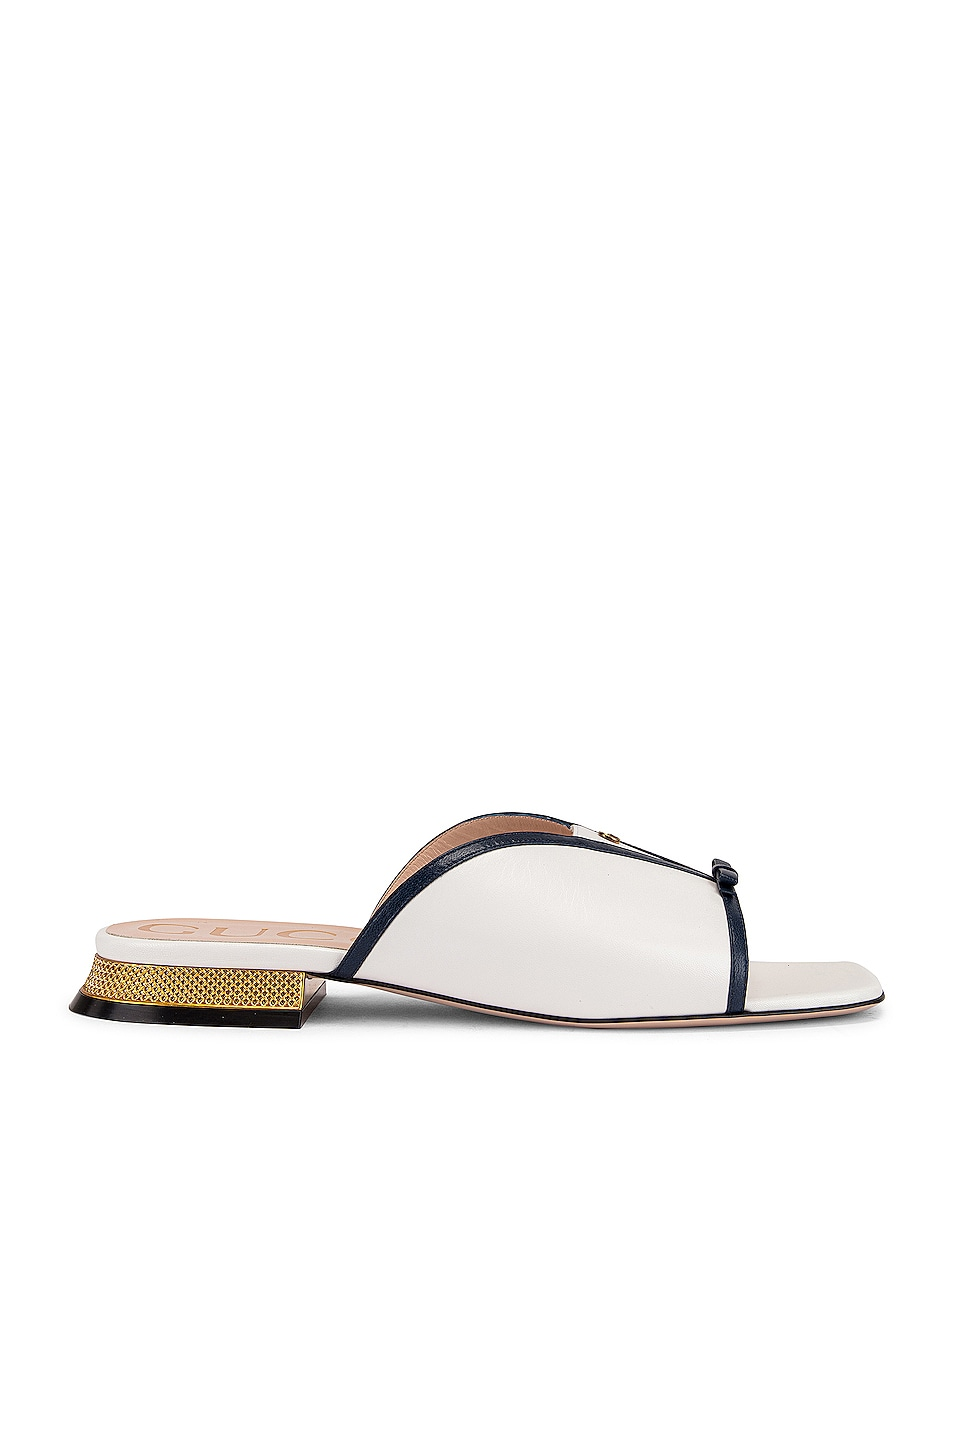 Image 2 of Gucci Alison Sandals in Blue & Great White